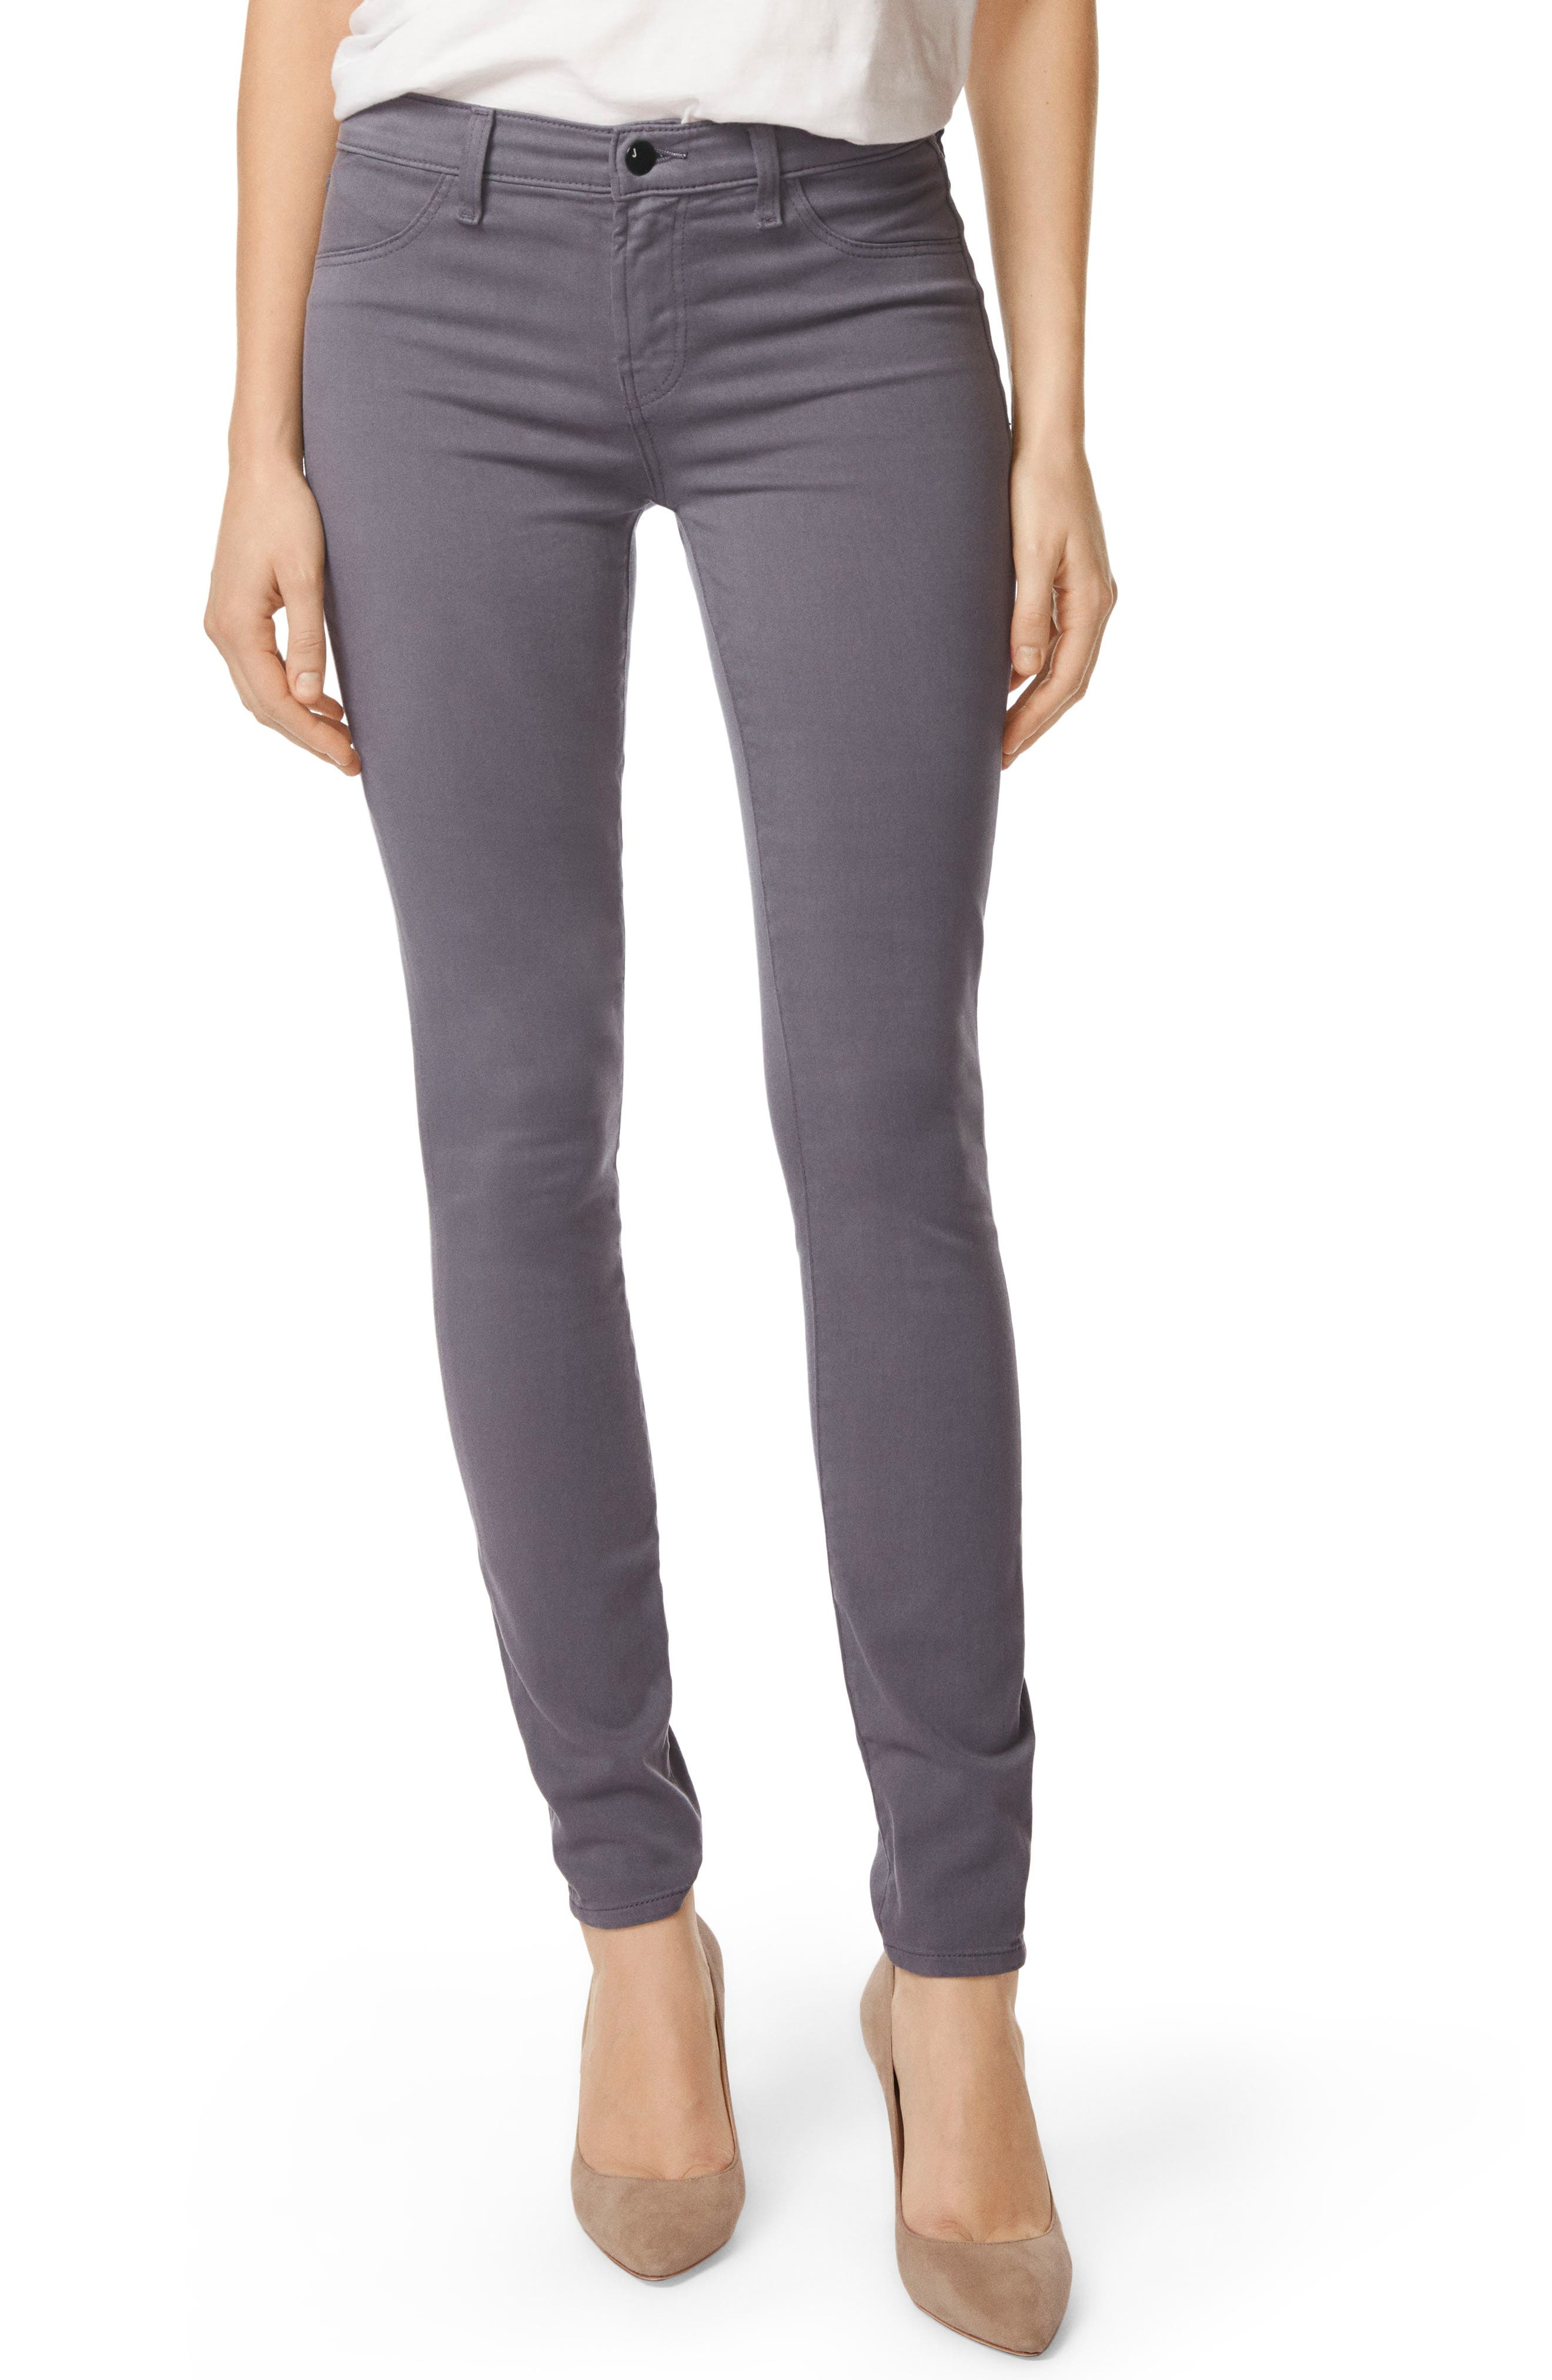 485 Mid Rise Skinny Jeans,                             Main thumbnail 1, color,                             VOLCANIC ASH